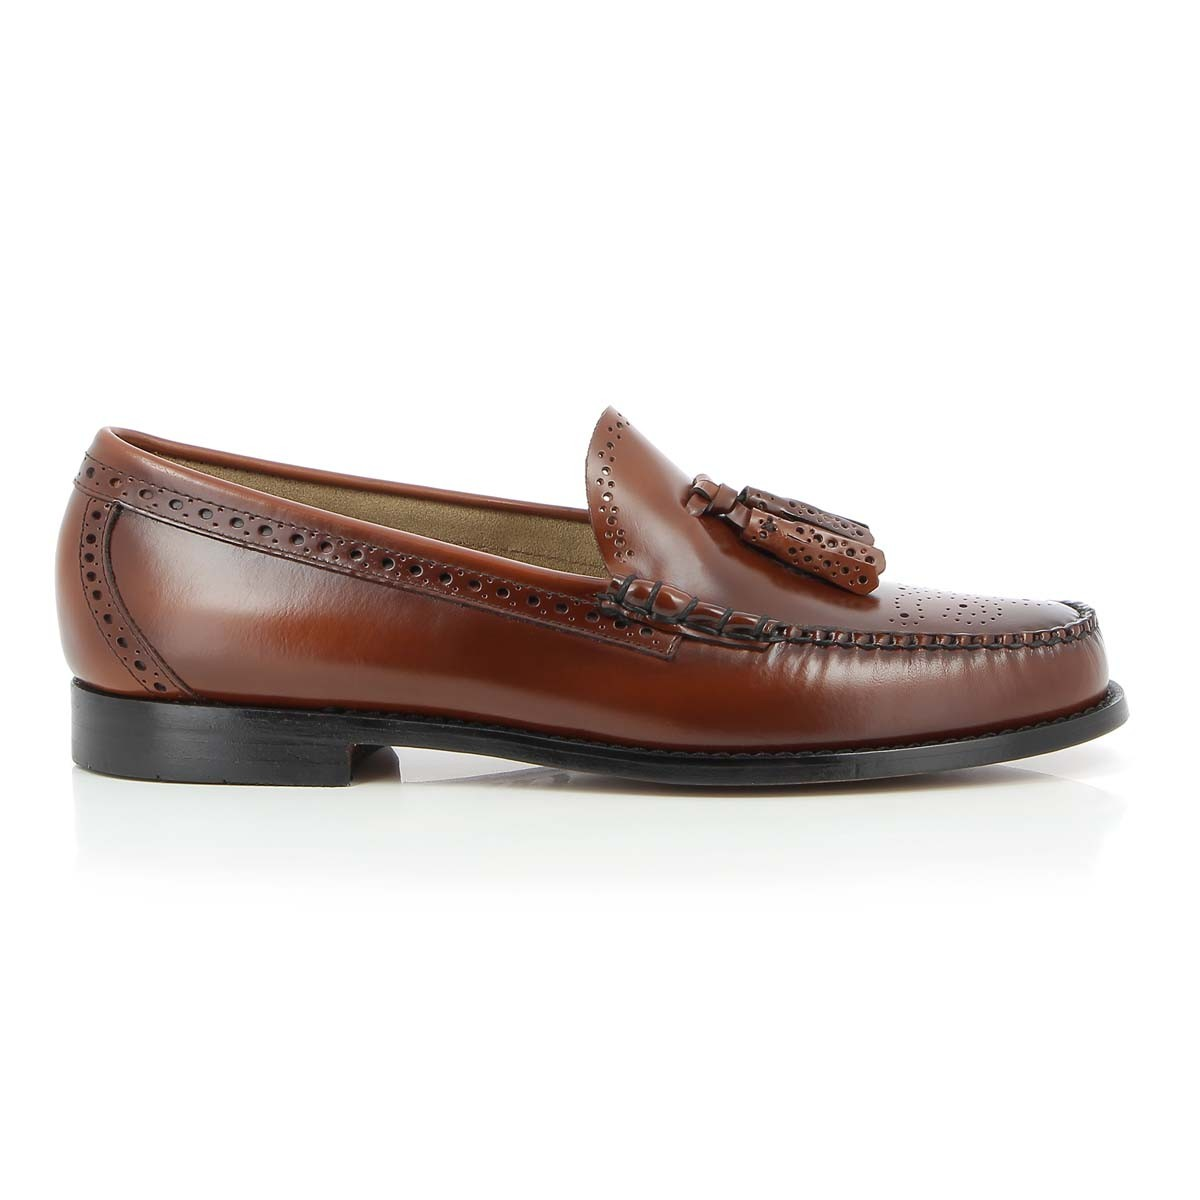 G.H. Bass & Co. Weejuns Larkin Brogue Mid Brown Leather